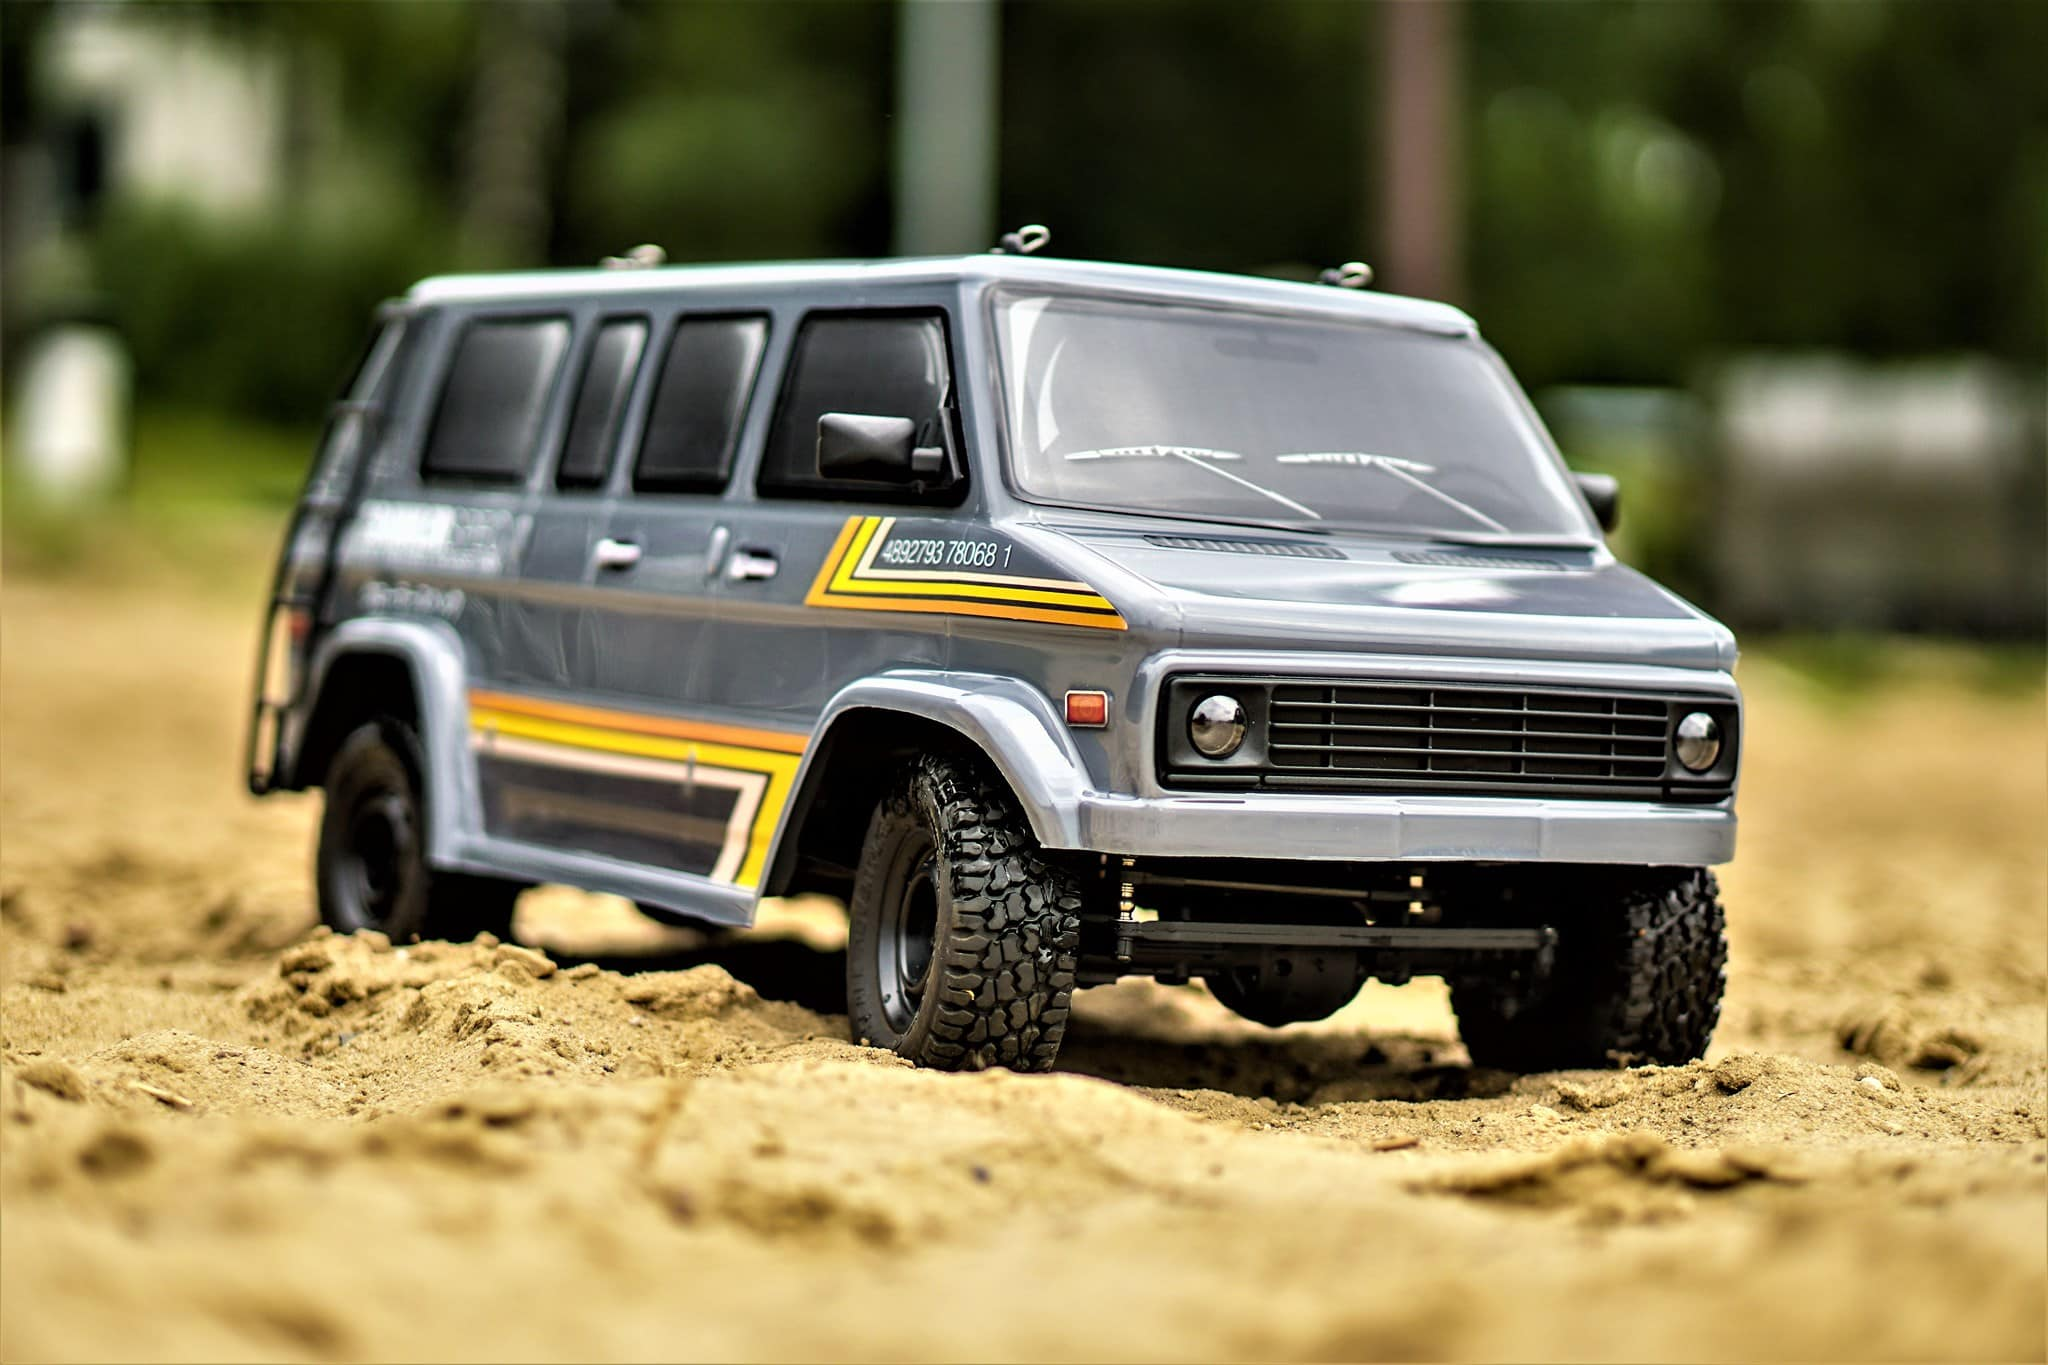 See it in Action: Carisma Scale Adventure's SCA-1E Prairie Wolf RTR [Video]